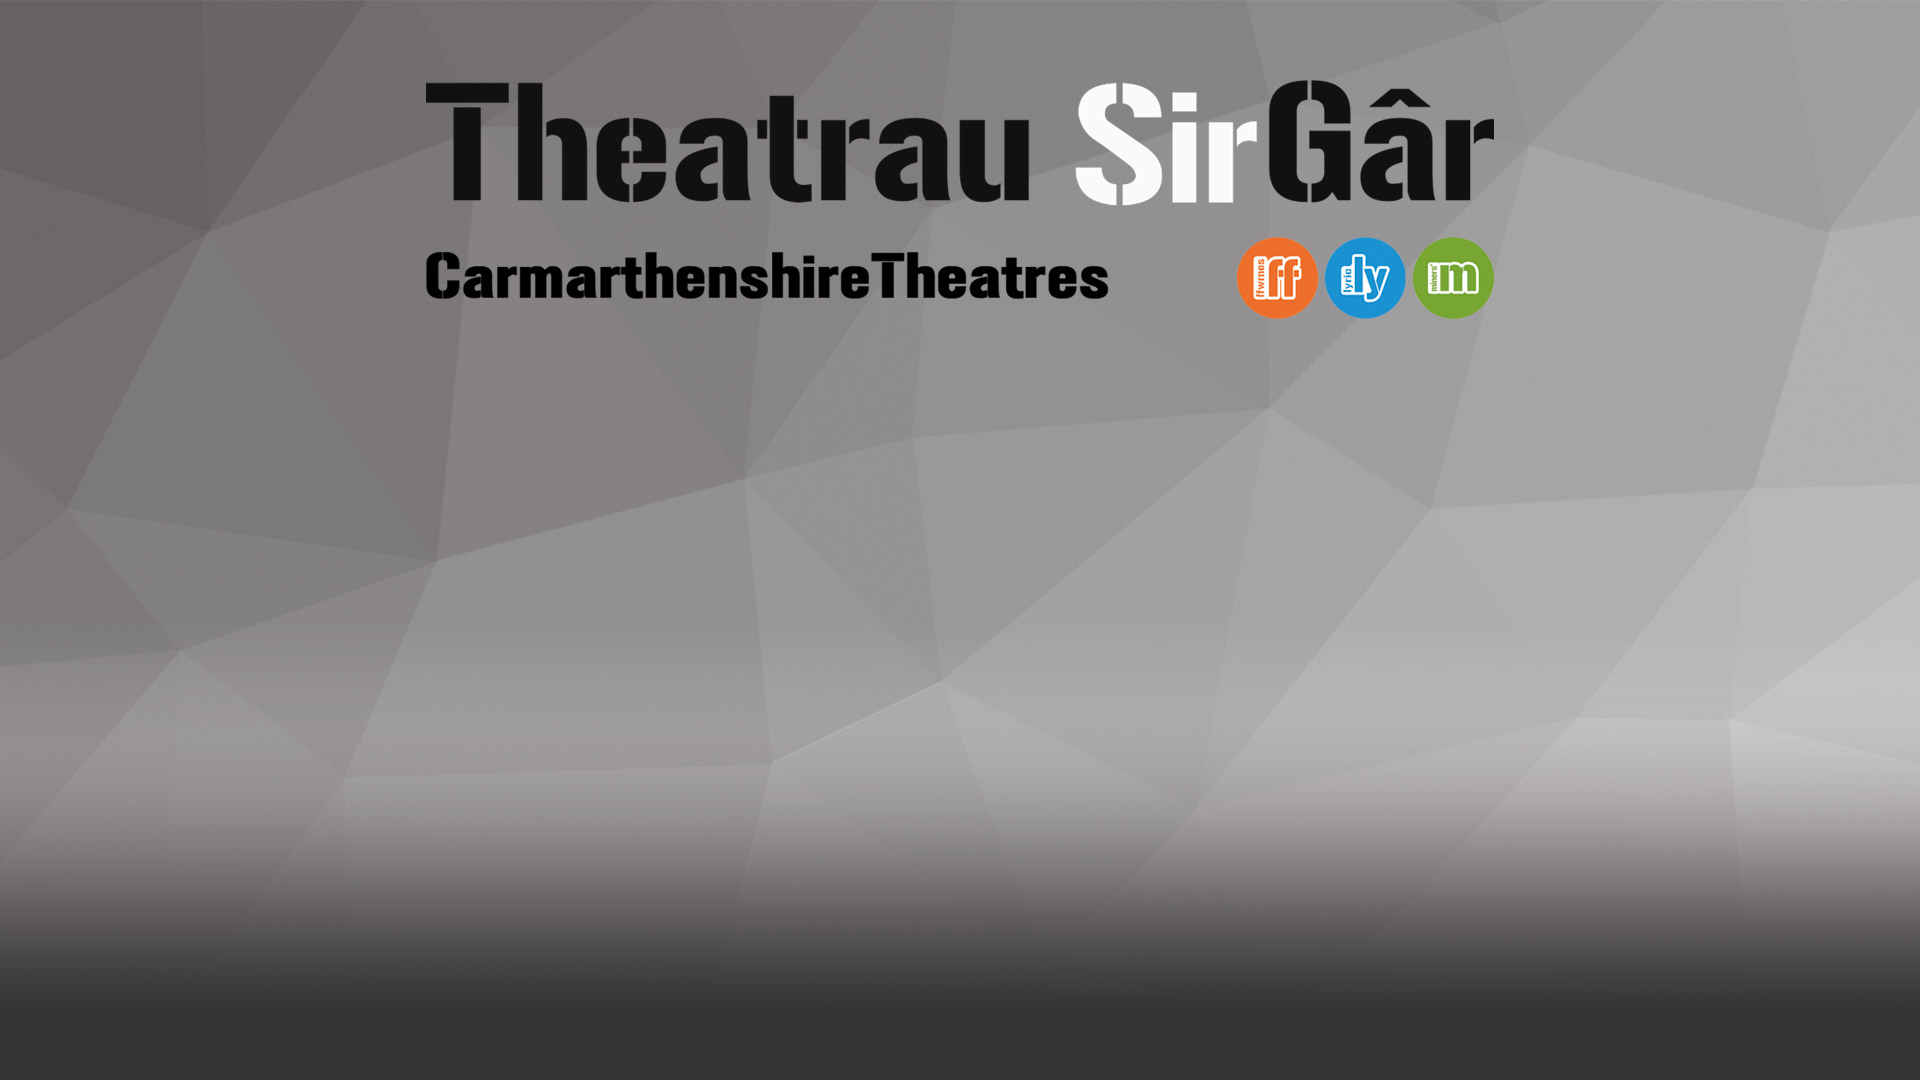 Theatrau SirGar Logo and background